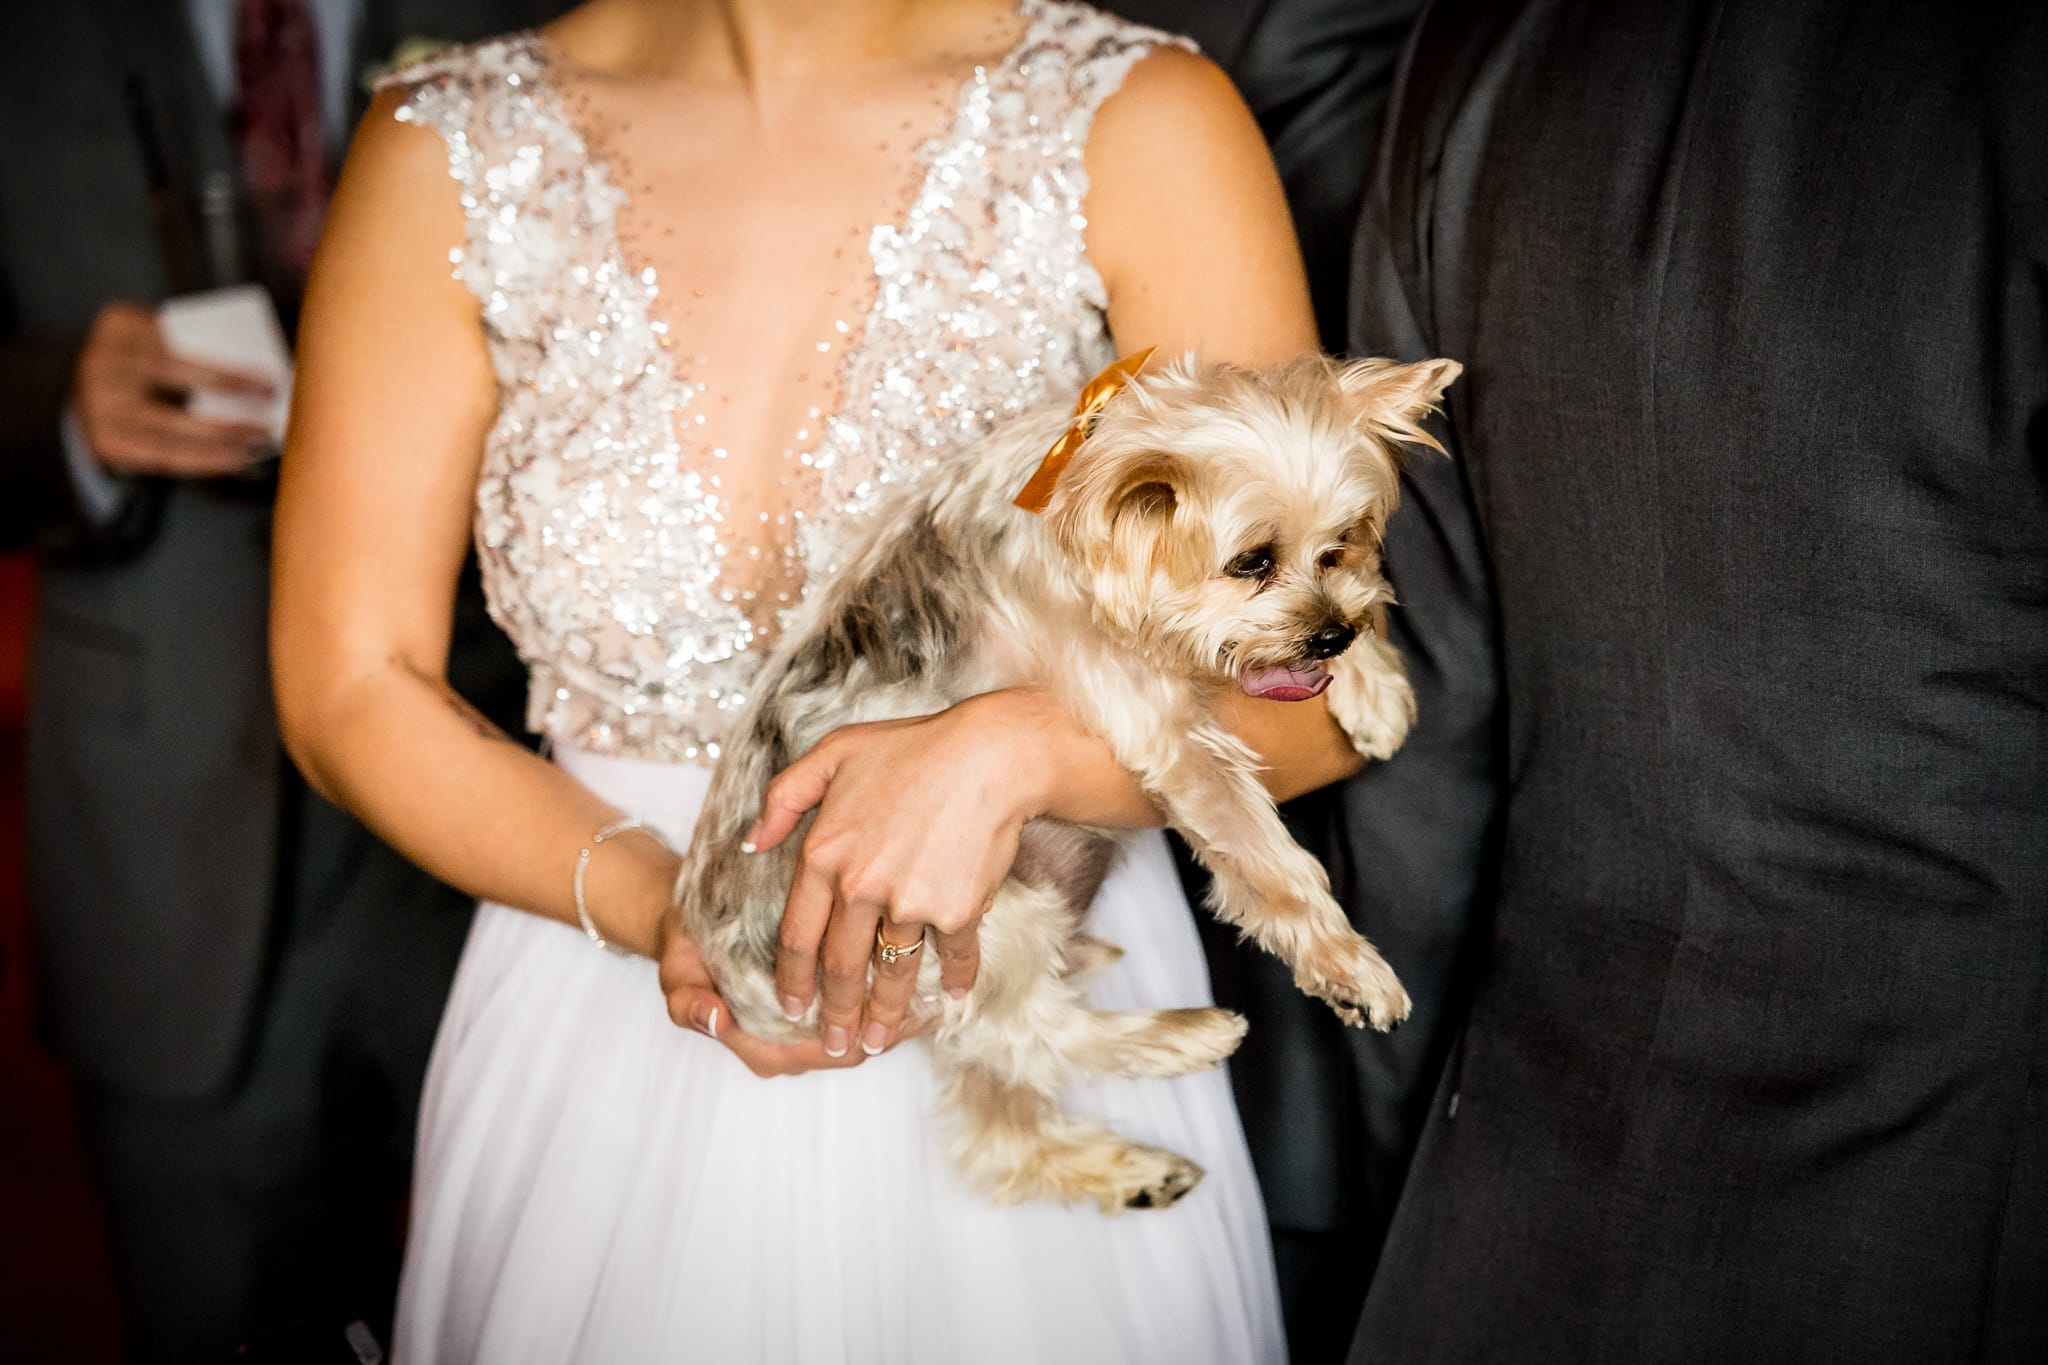 Bride with her dog during the wedding reception at Aster Cafe 2